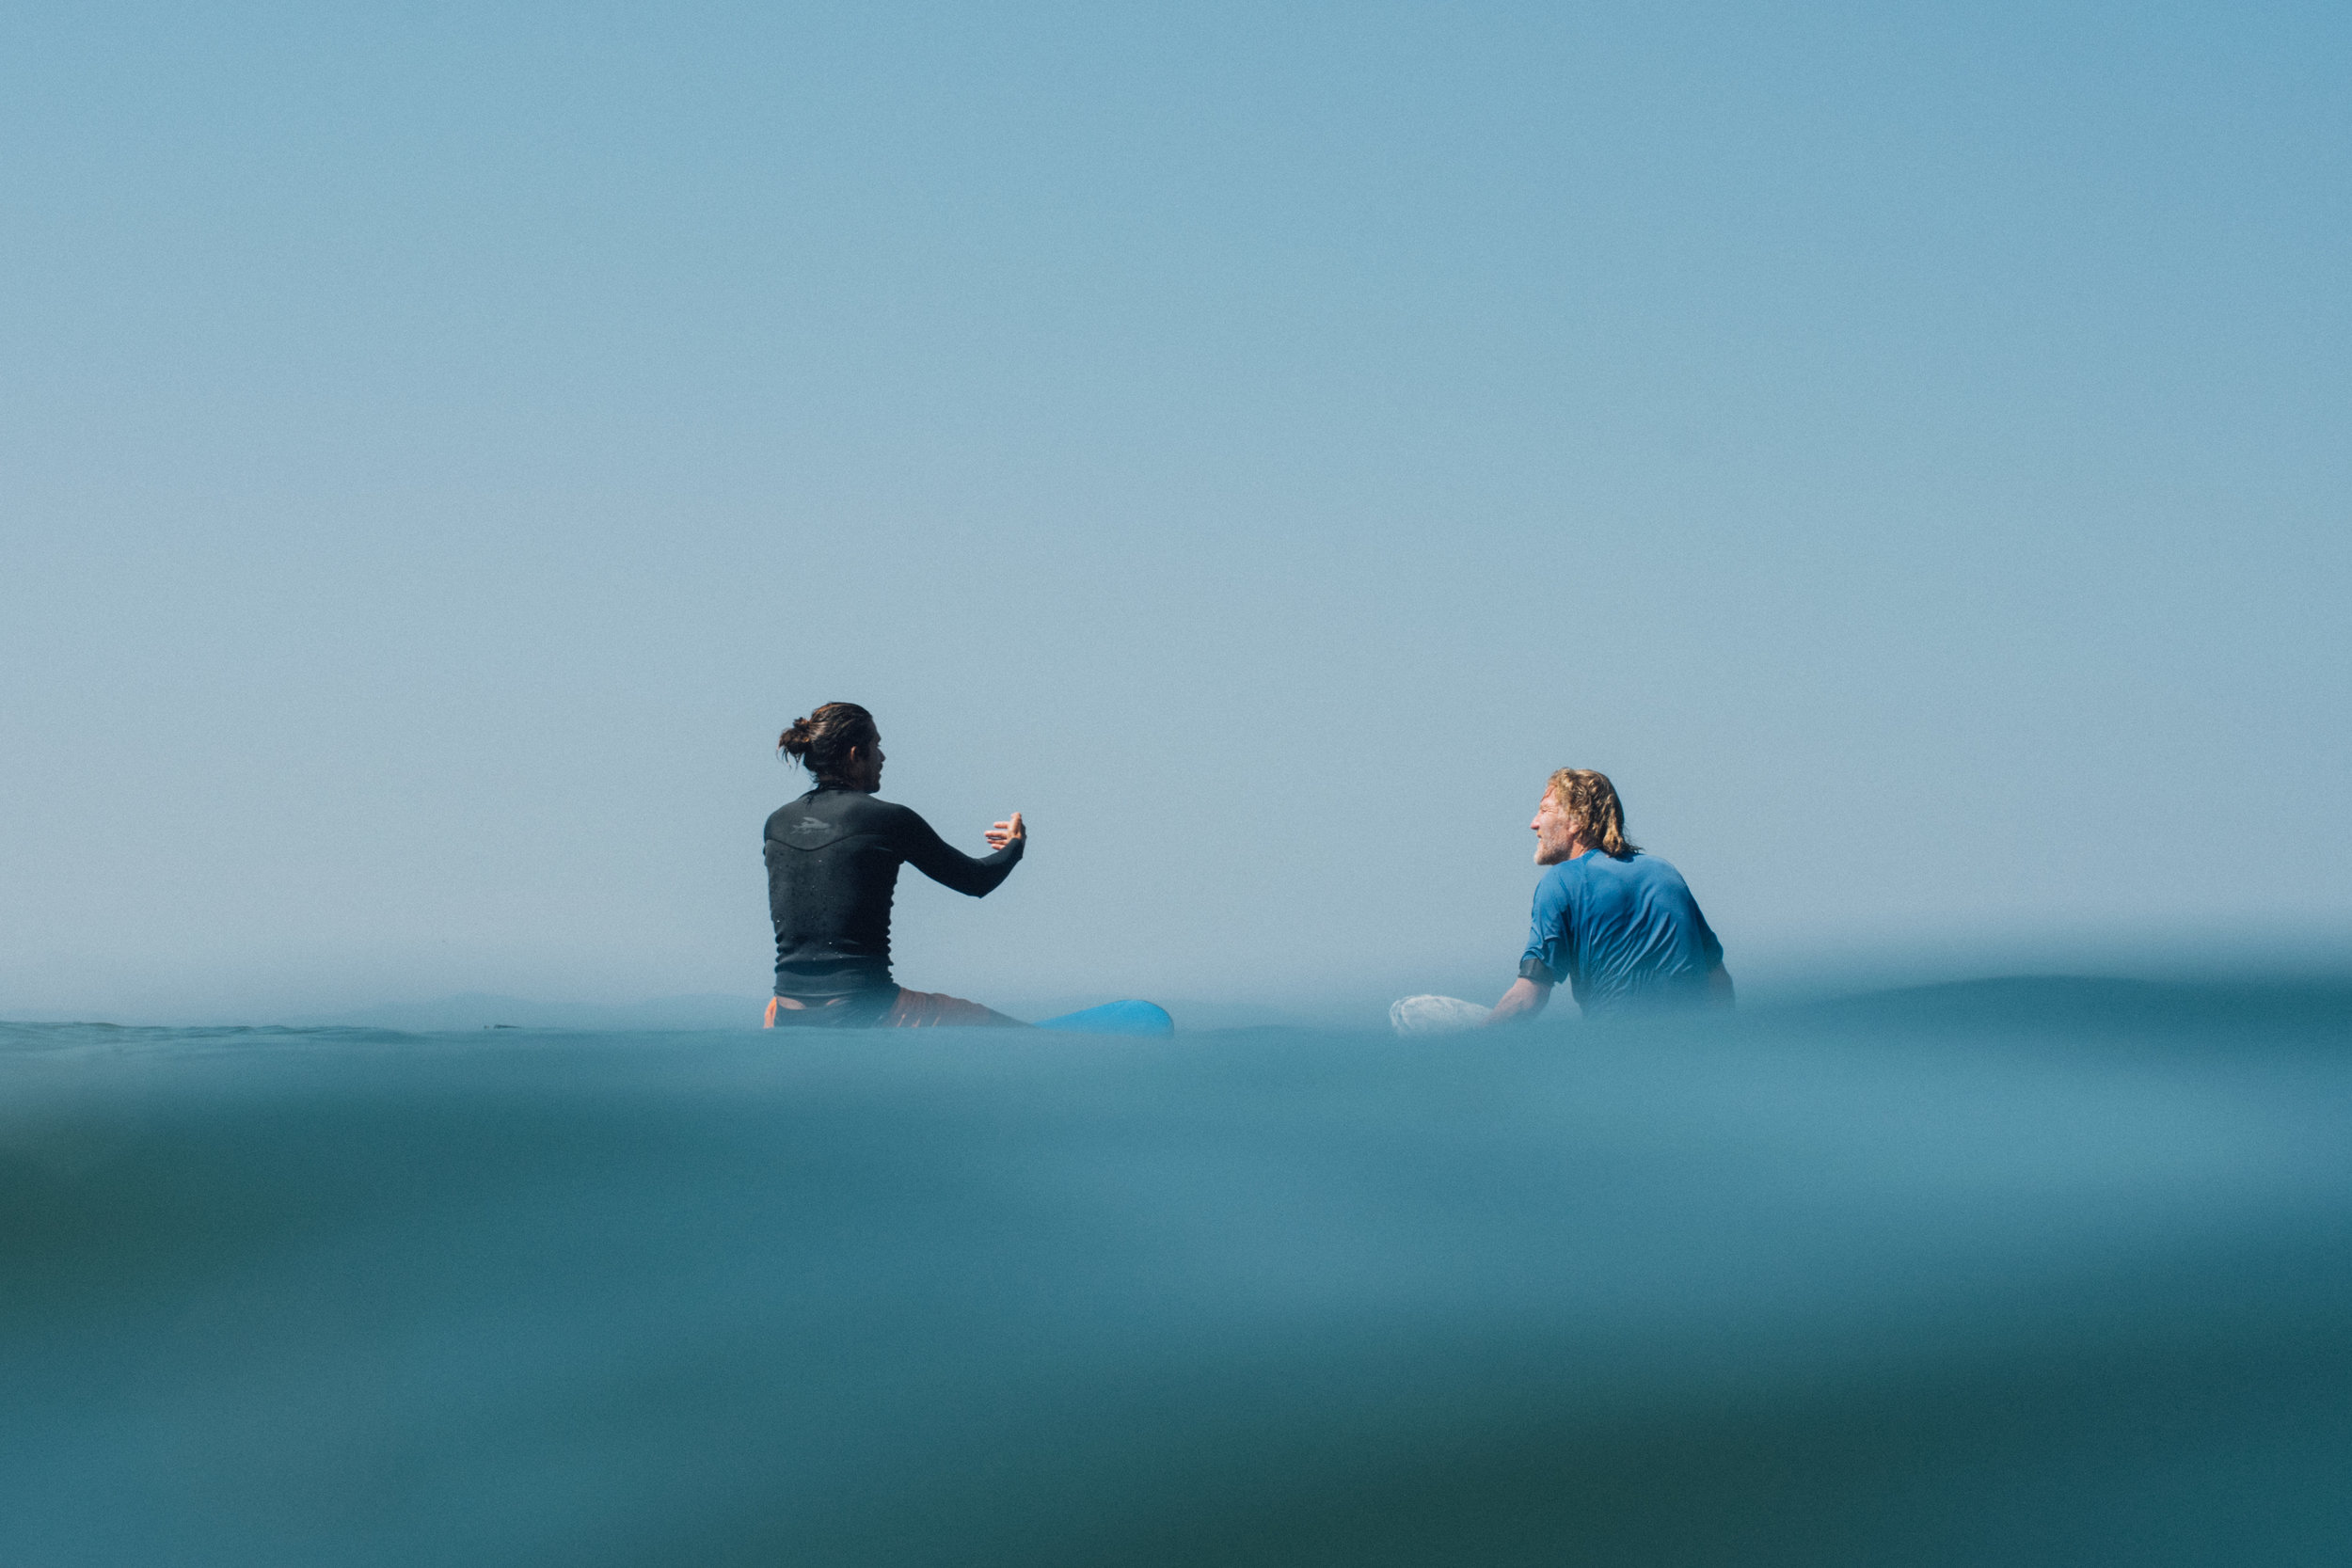 surf-lesson-water.jpg